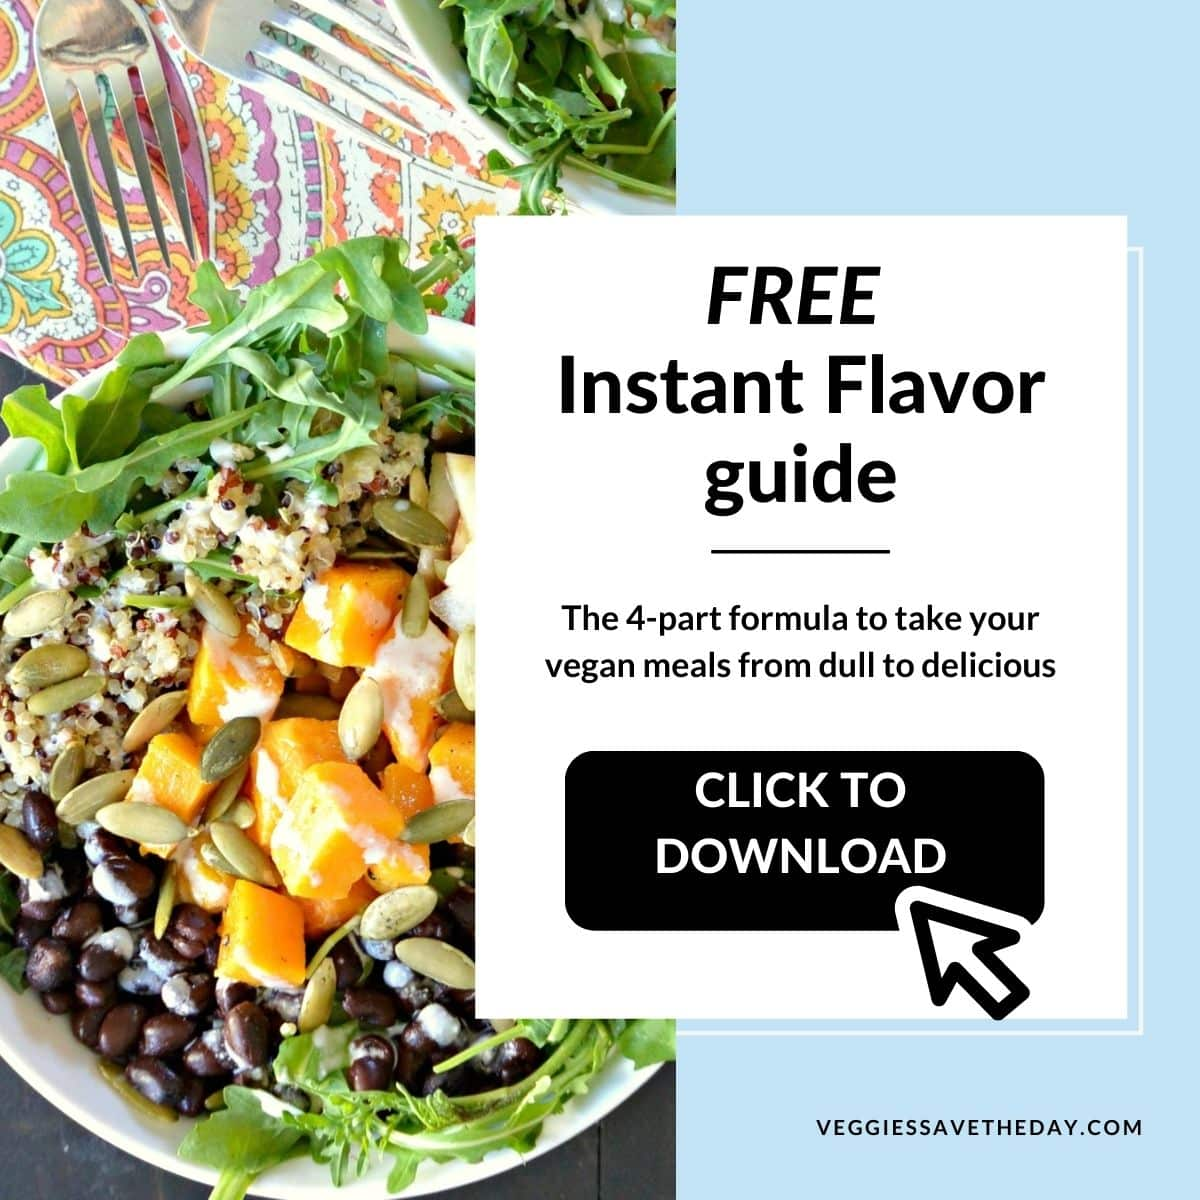 Free Instant Flavor guide